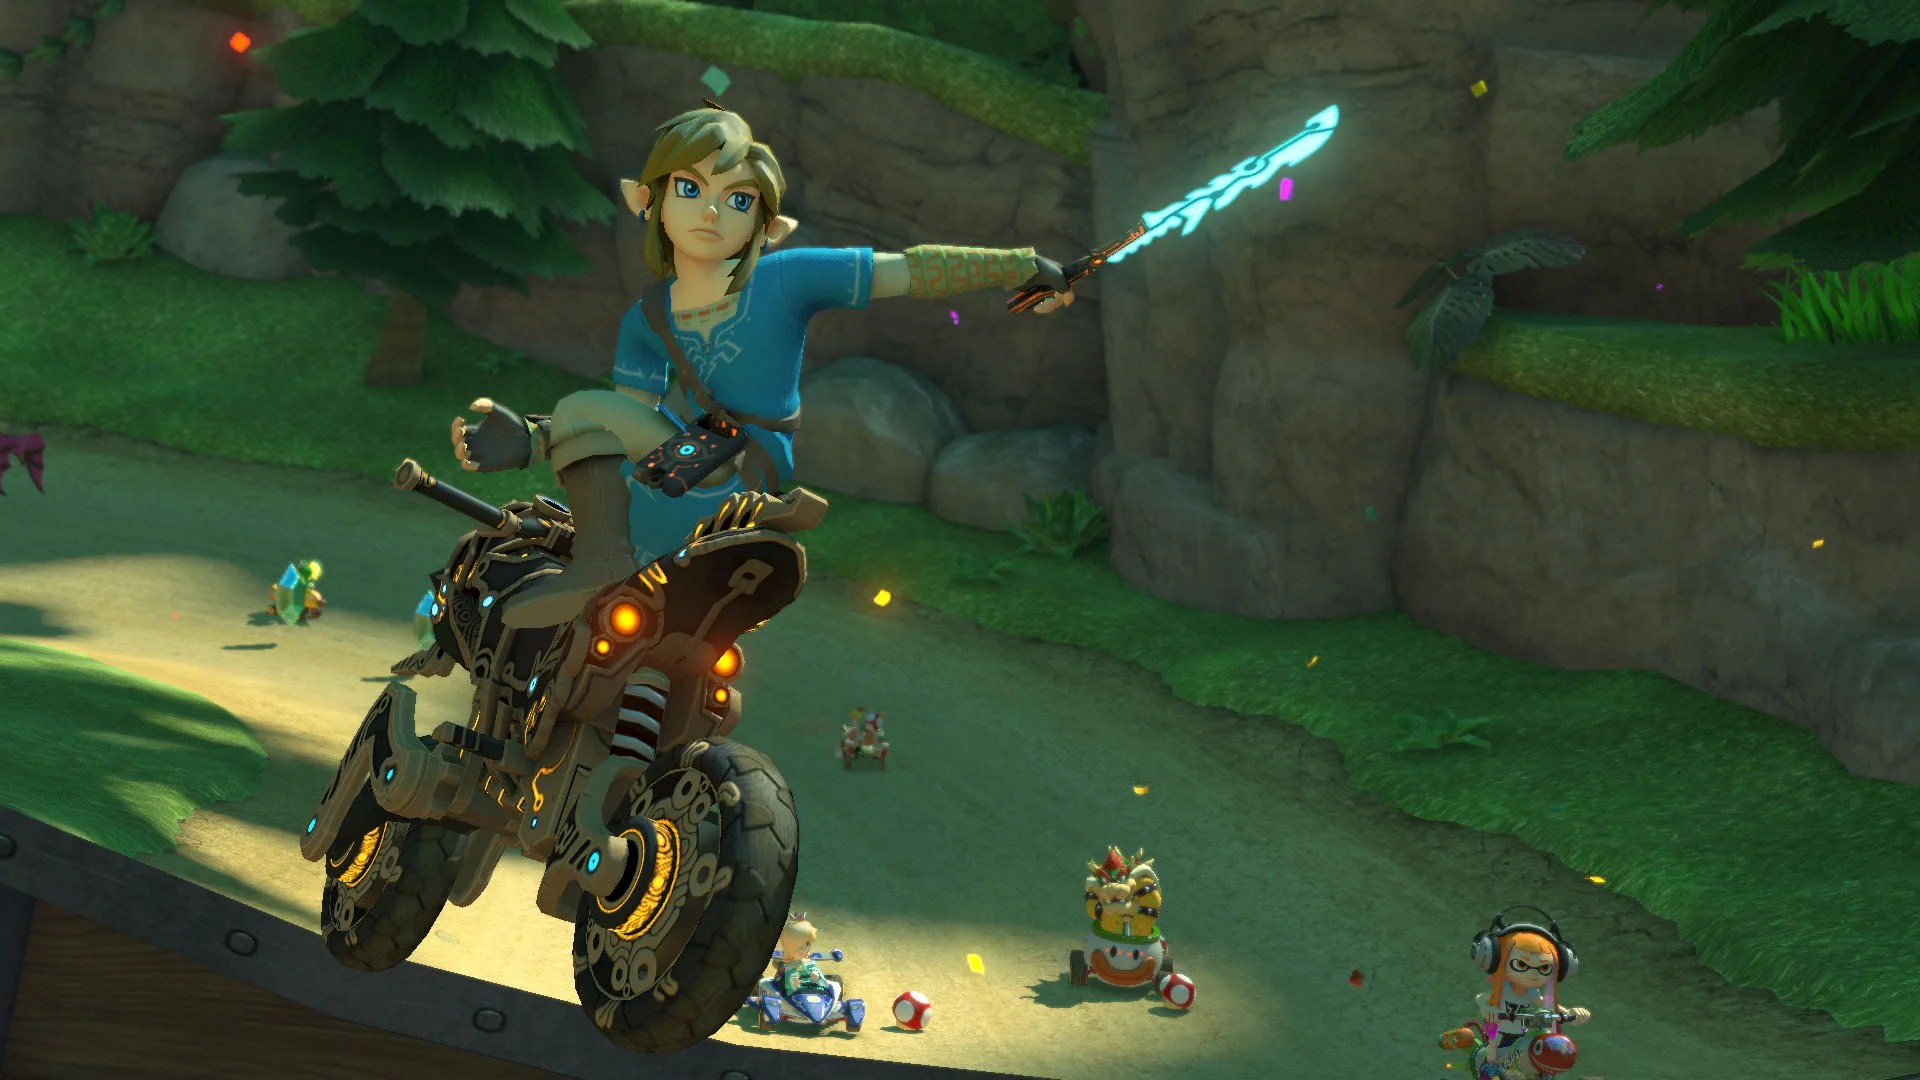 Mario Kart 8 Deluxe Gets A New Character And Motorcycle In